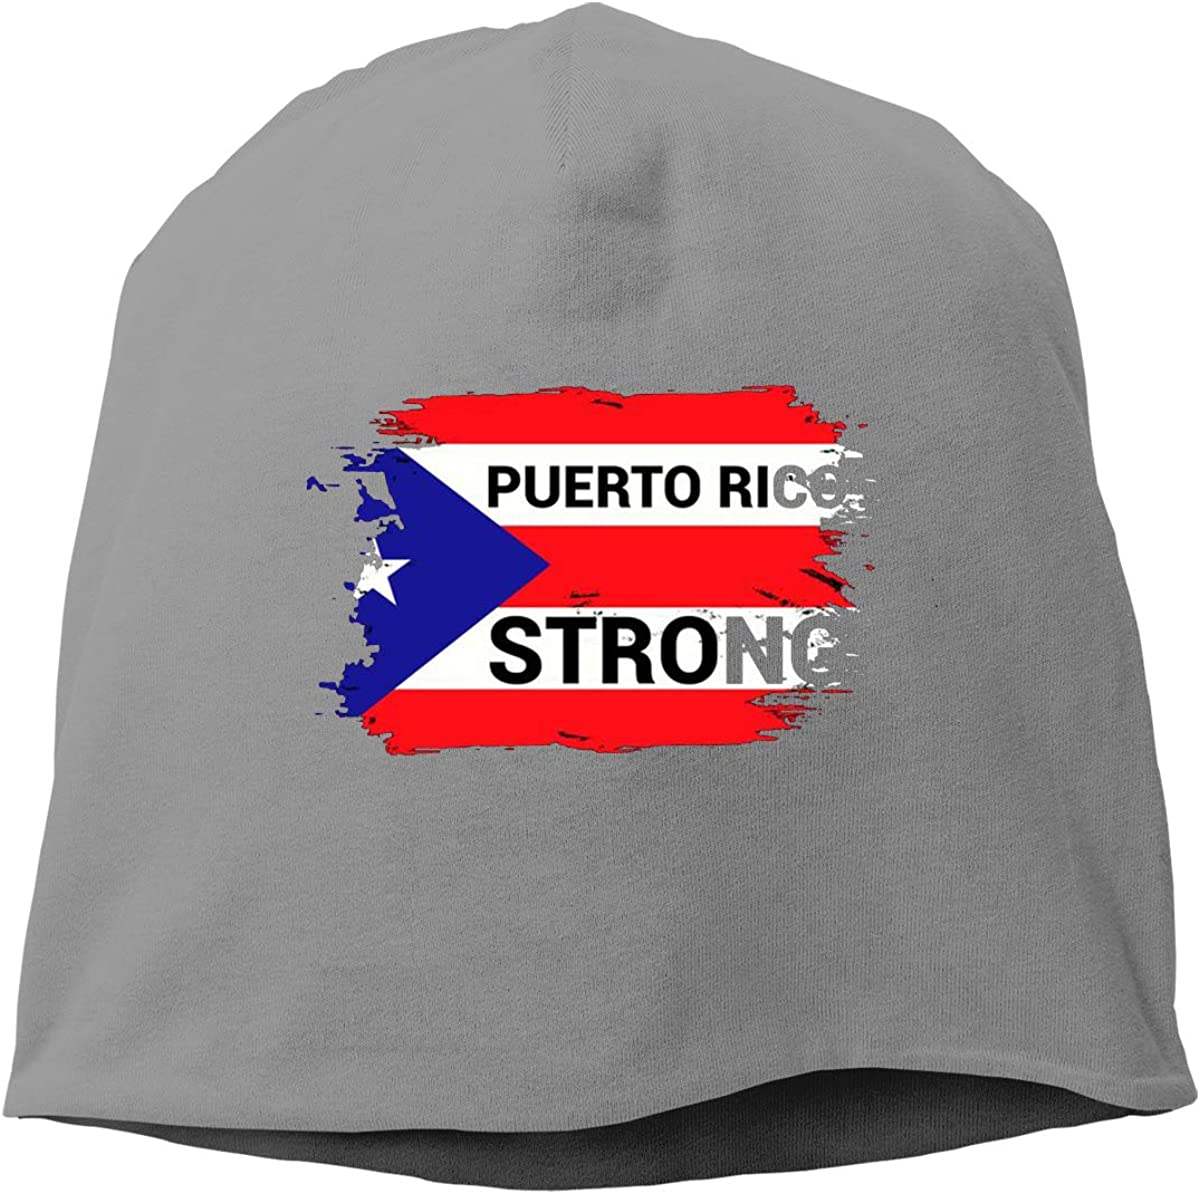 Puerto Rico Strong Unisex Knitted Hat Beanie Hat Warm Hats Skull Cap